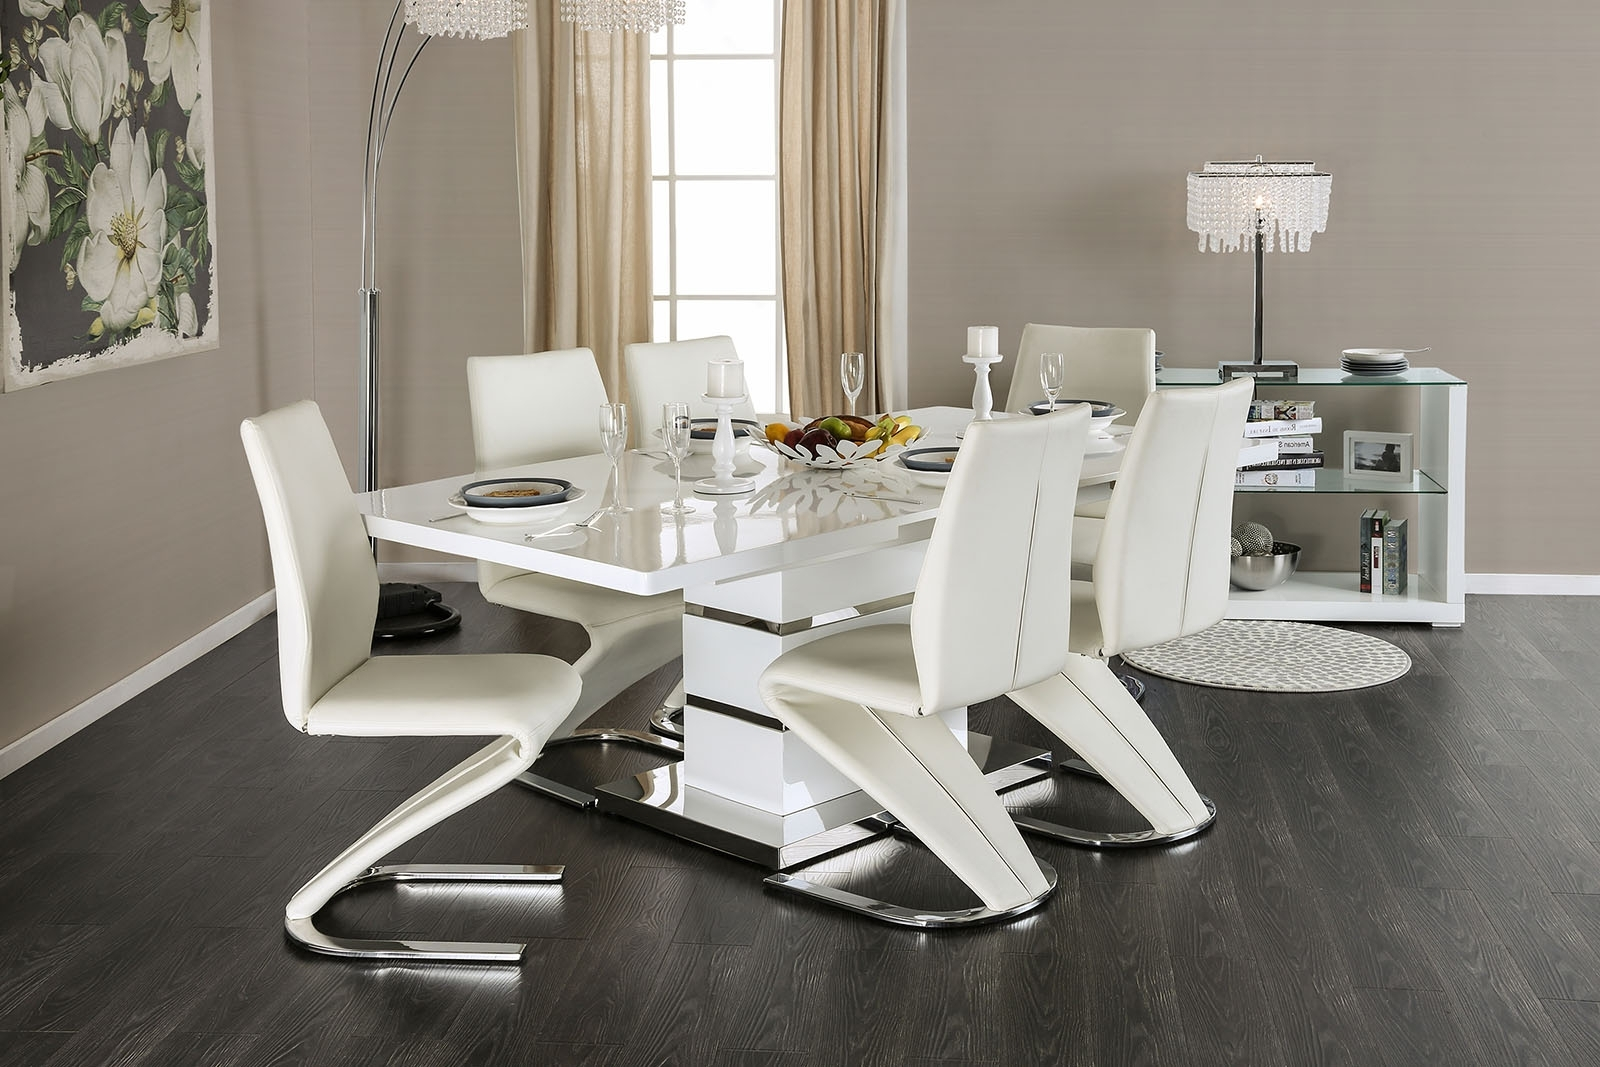 Most Current Midvale Contemporary Style White High Gloss Lacquer Finish & Chrome Throughout Chrome Dining Room Sets (View 11 of 25)